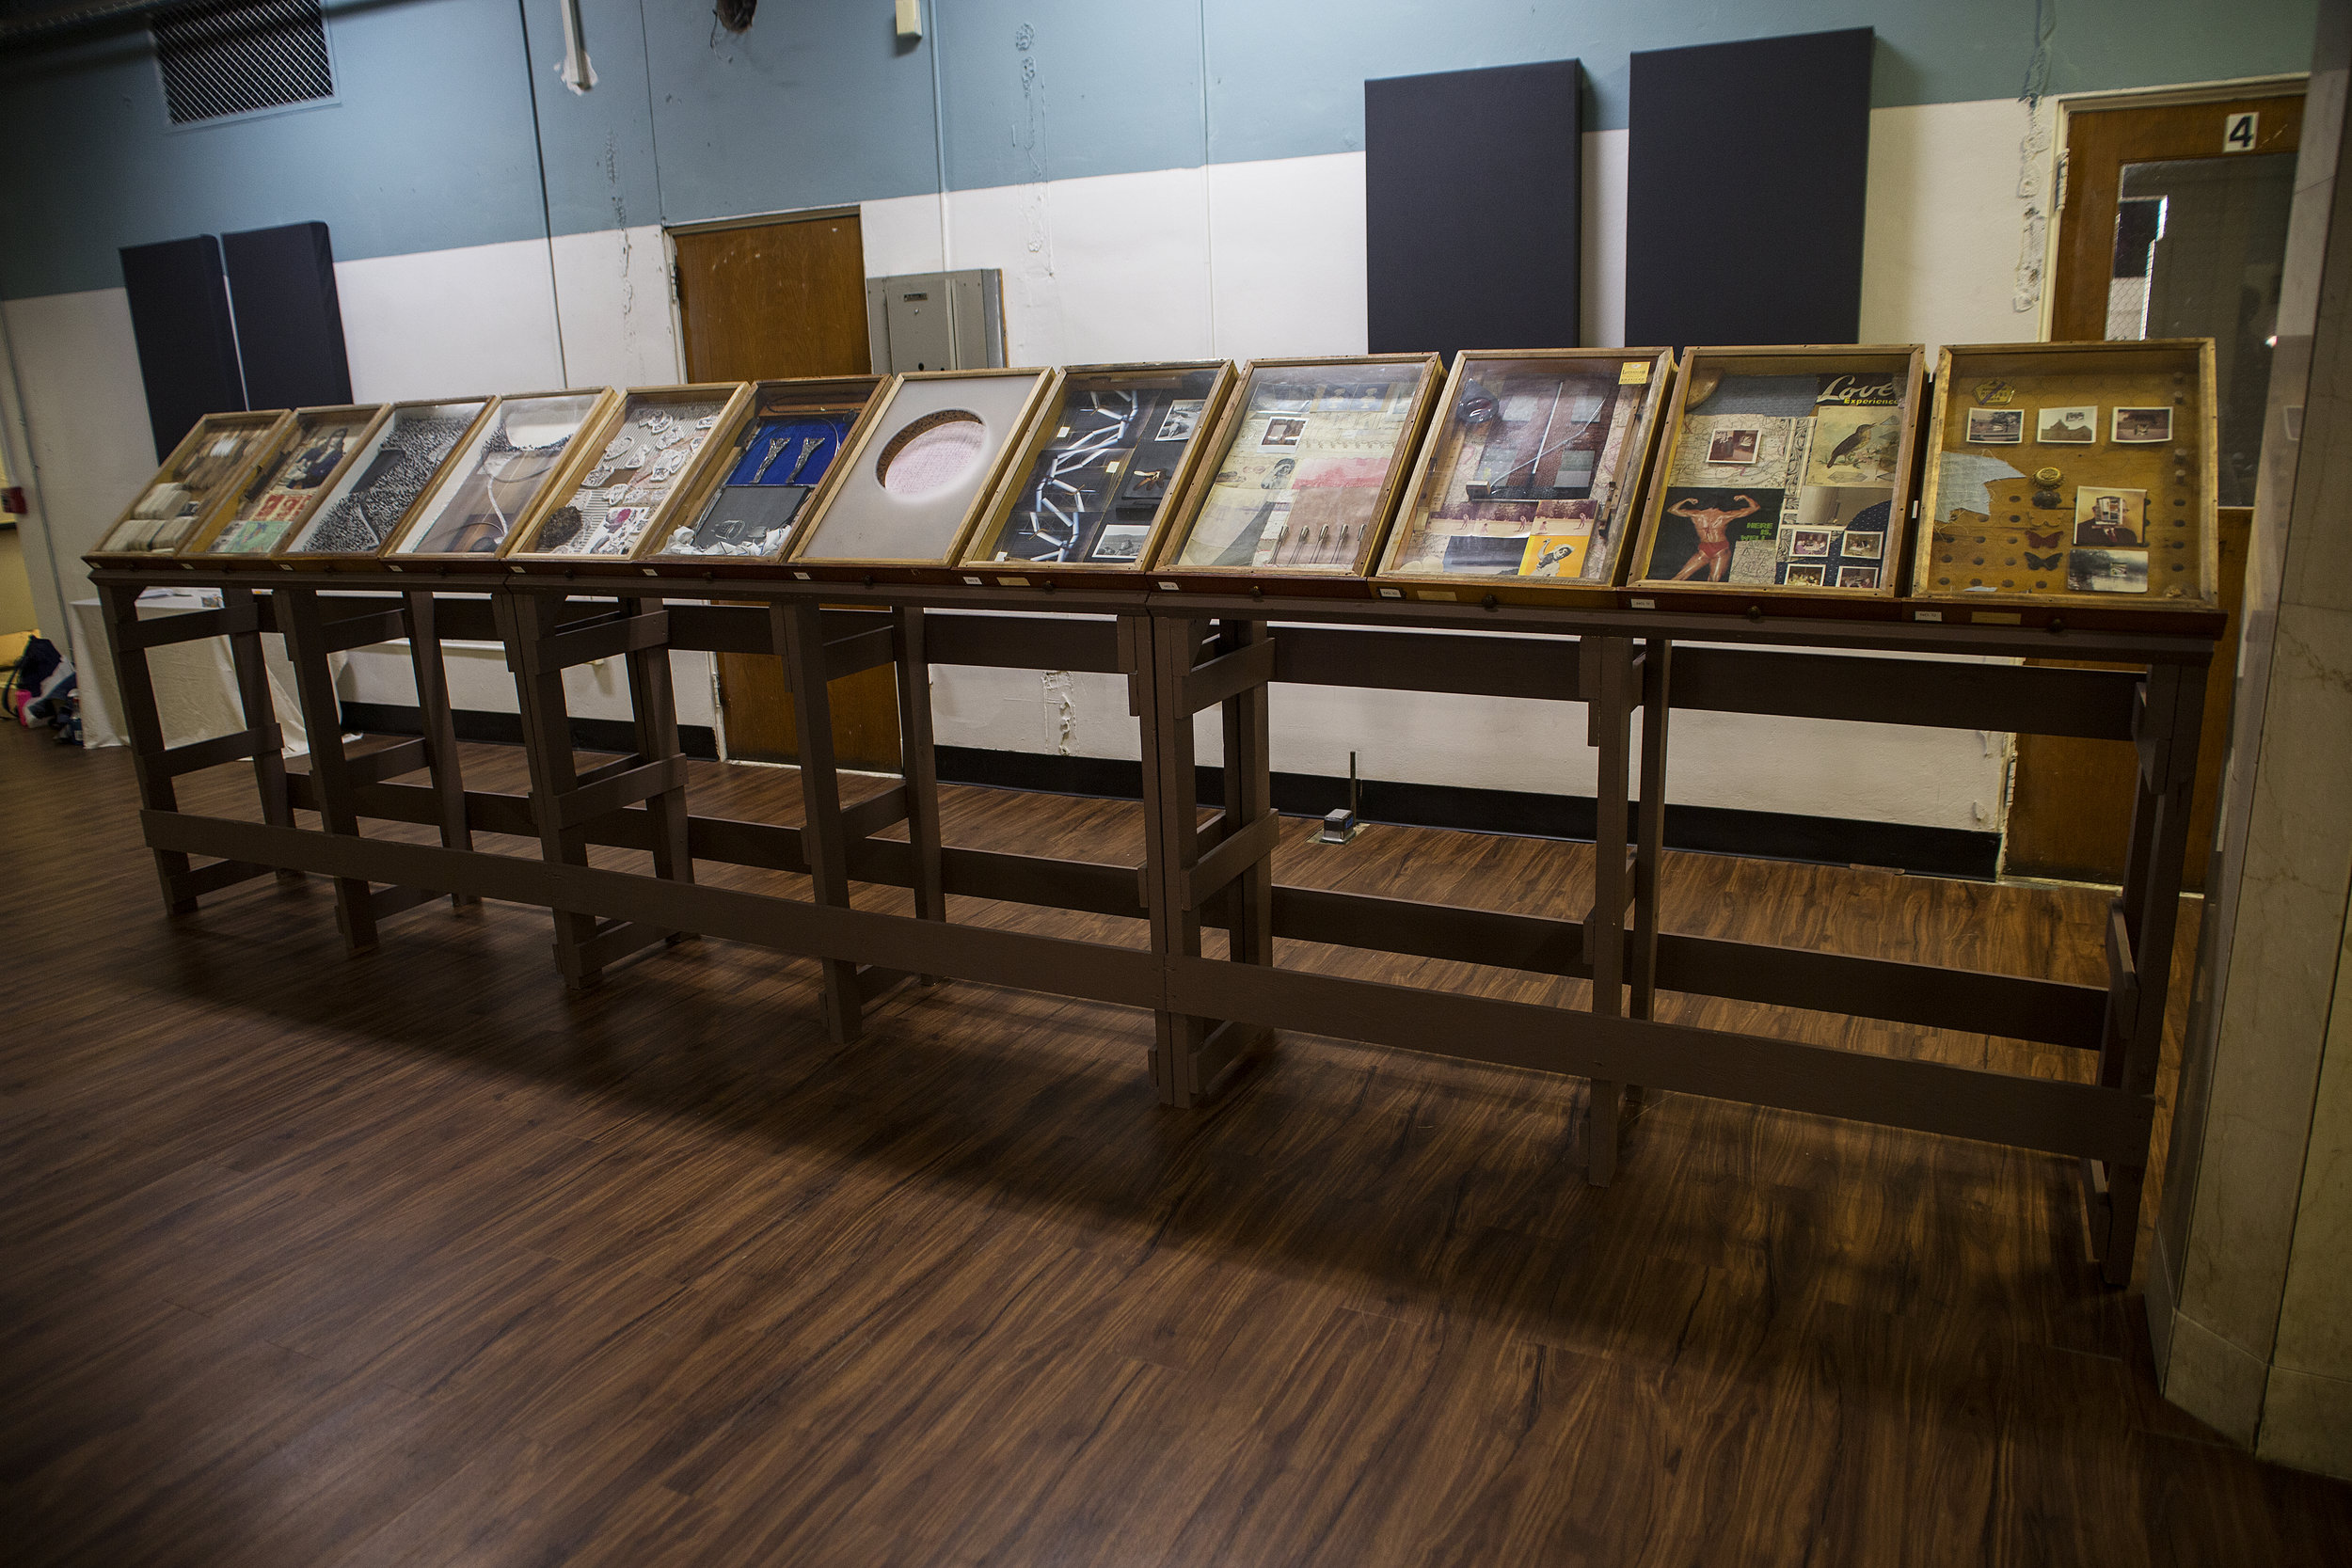 Archive of 12 specimen boxes on stands, 18 linear feet.